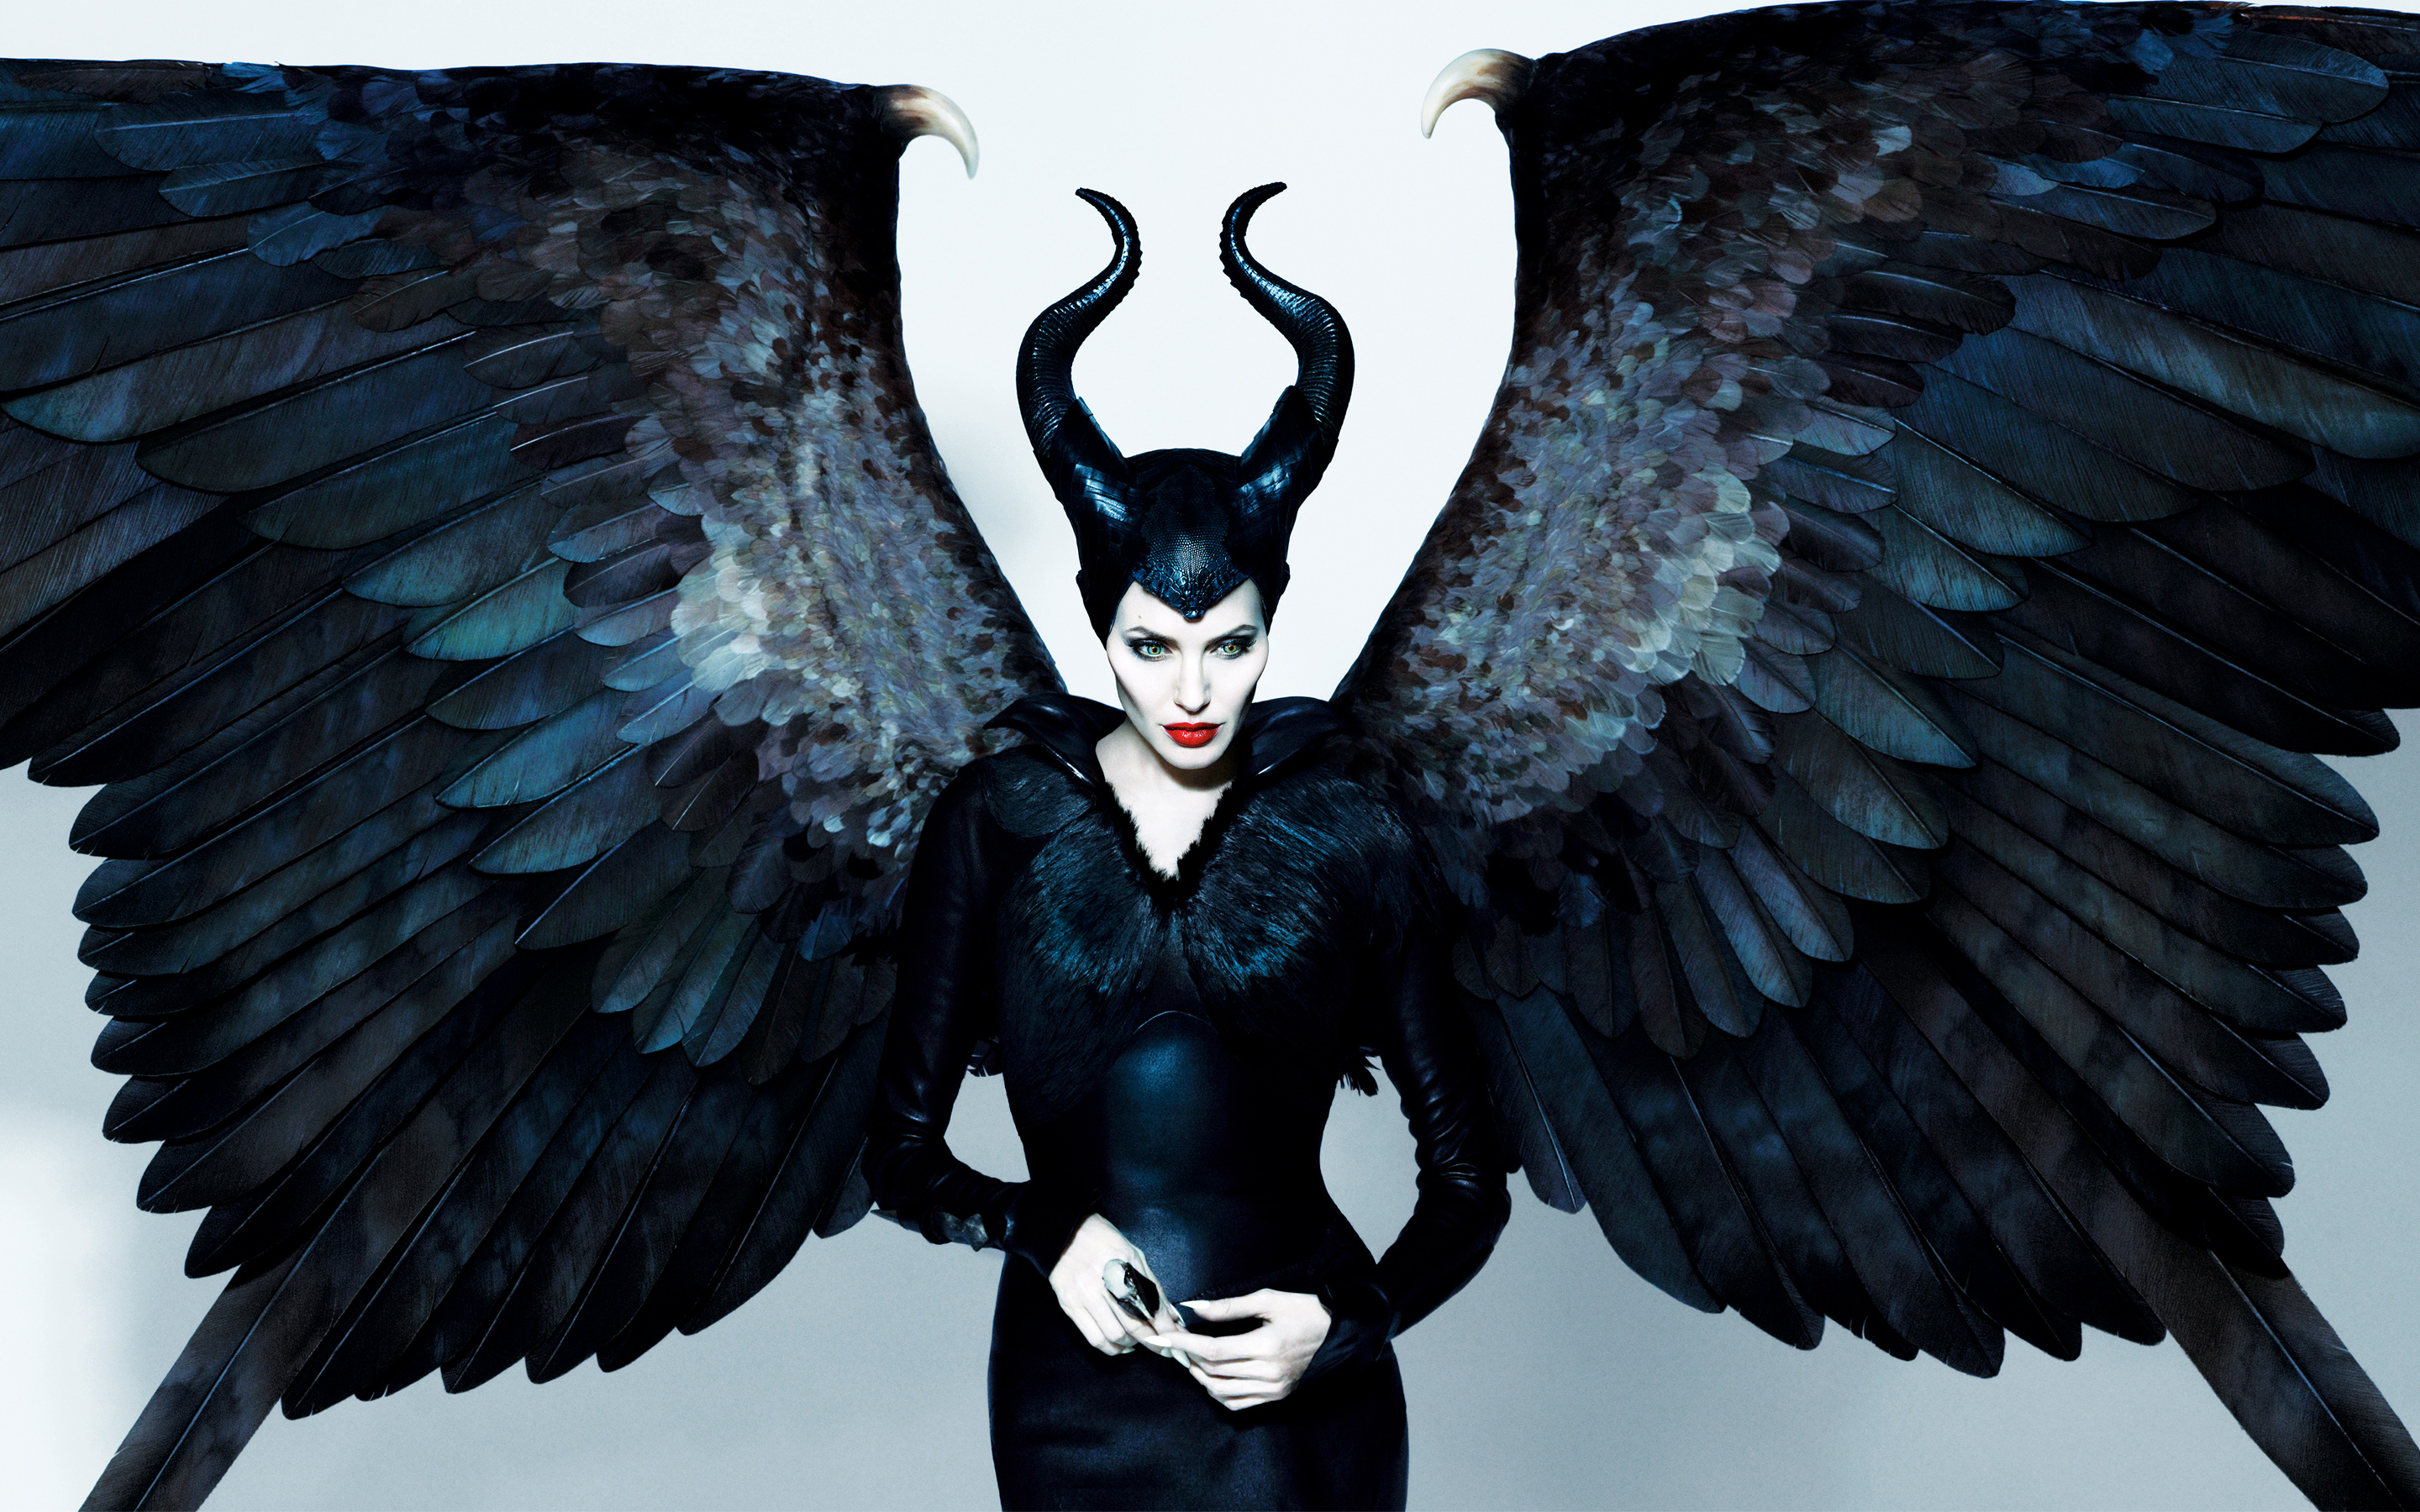 Angelina Jolie Maleficent 2885.11 Kb